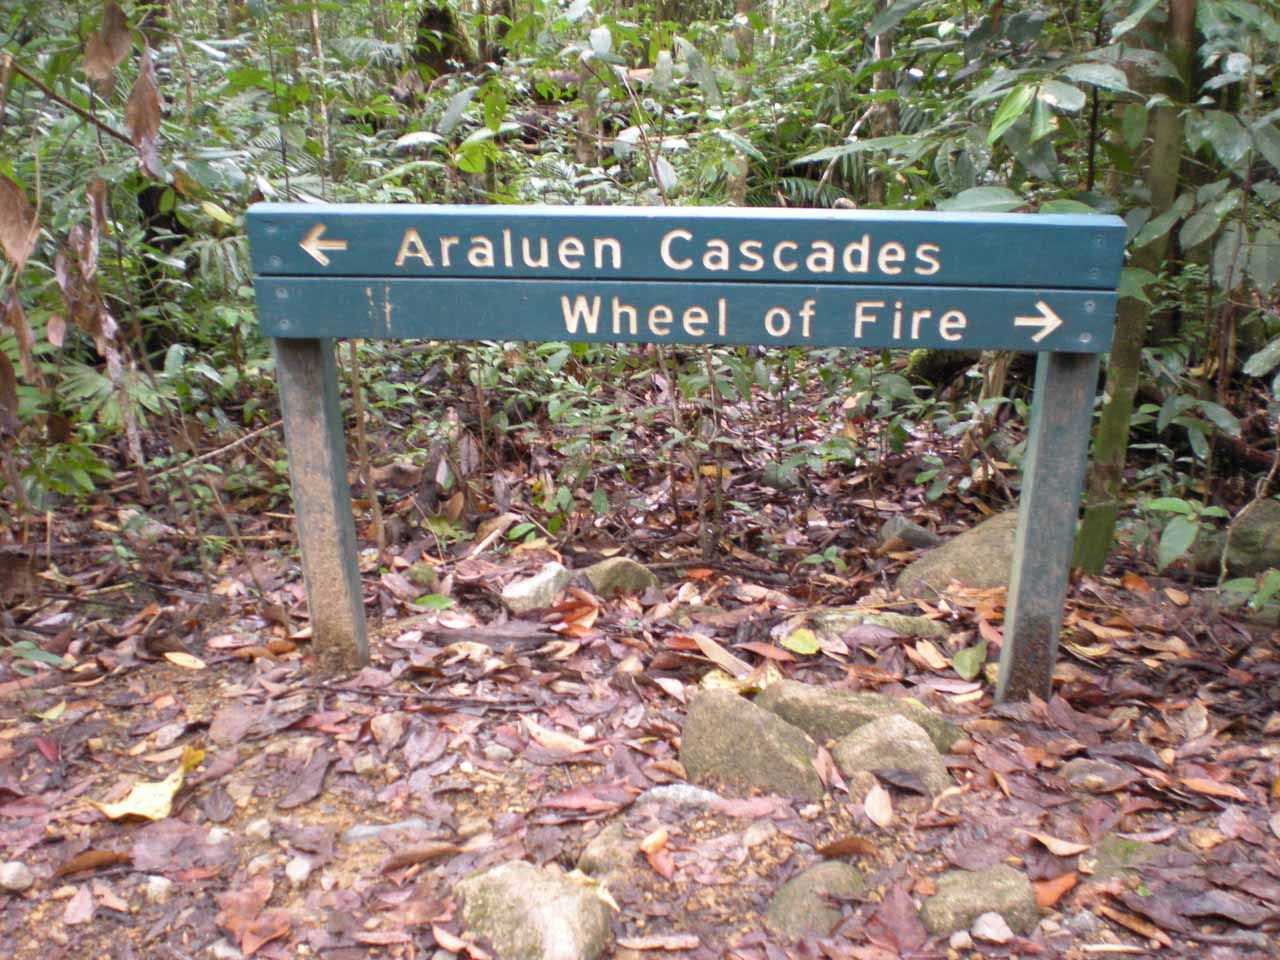 We eventually made it to a junction where we could choose between going to Araluen Cascades or continue to the Wheel of Fire